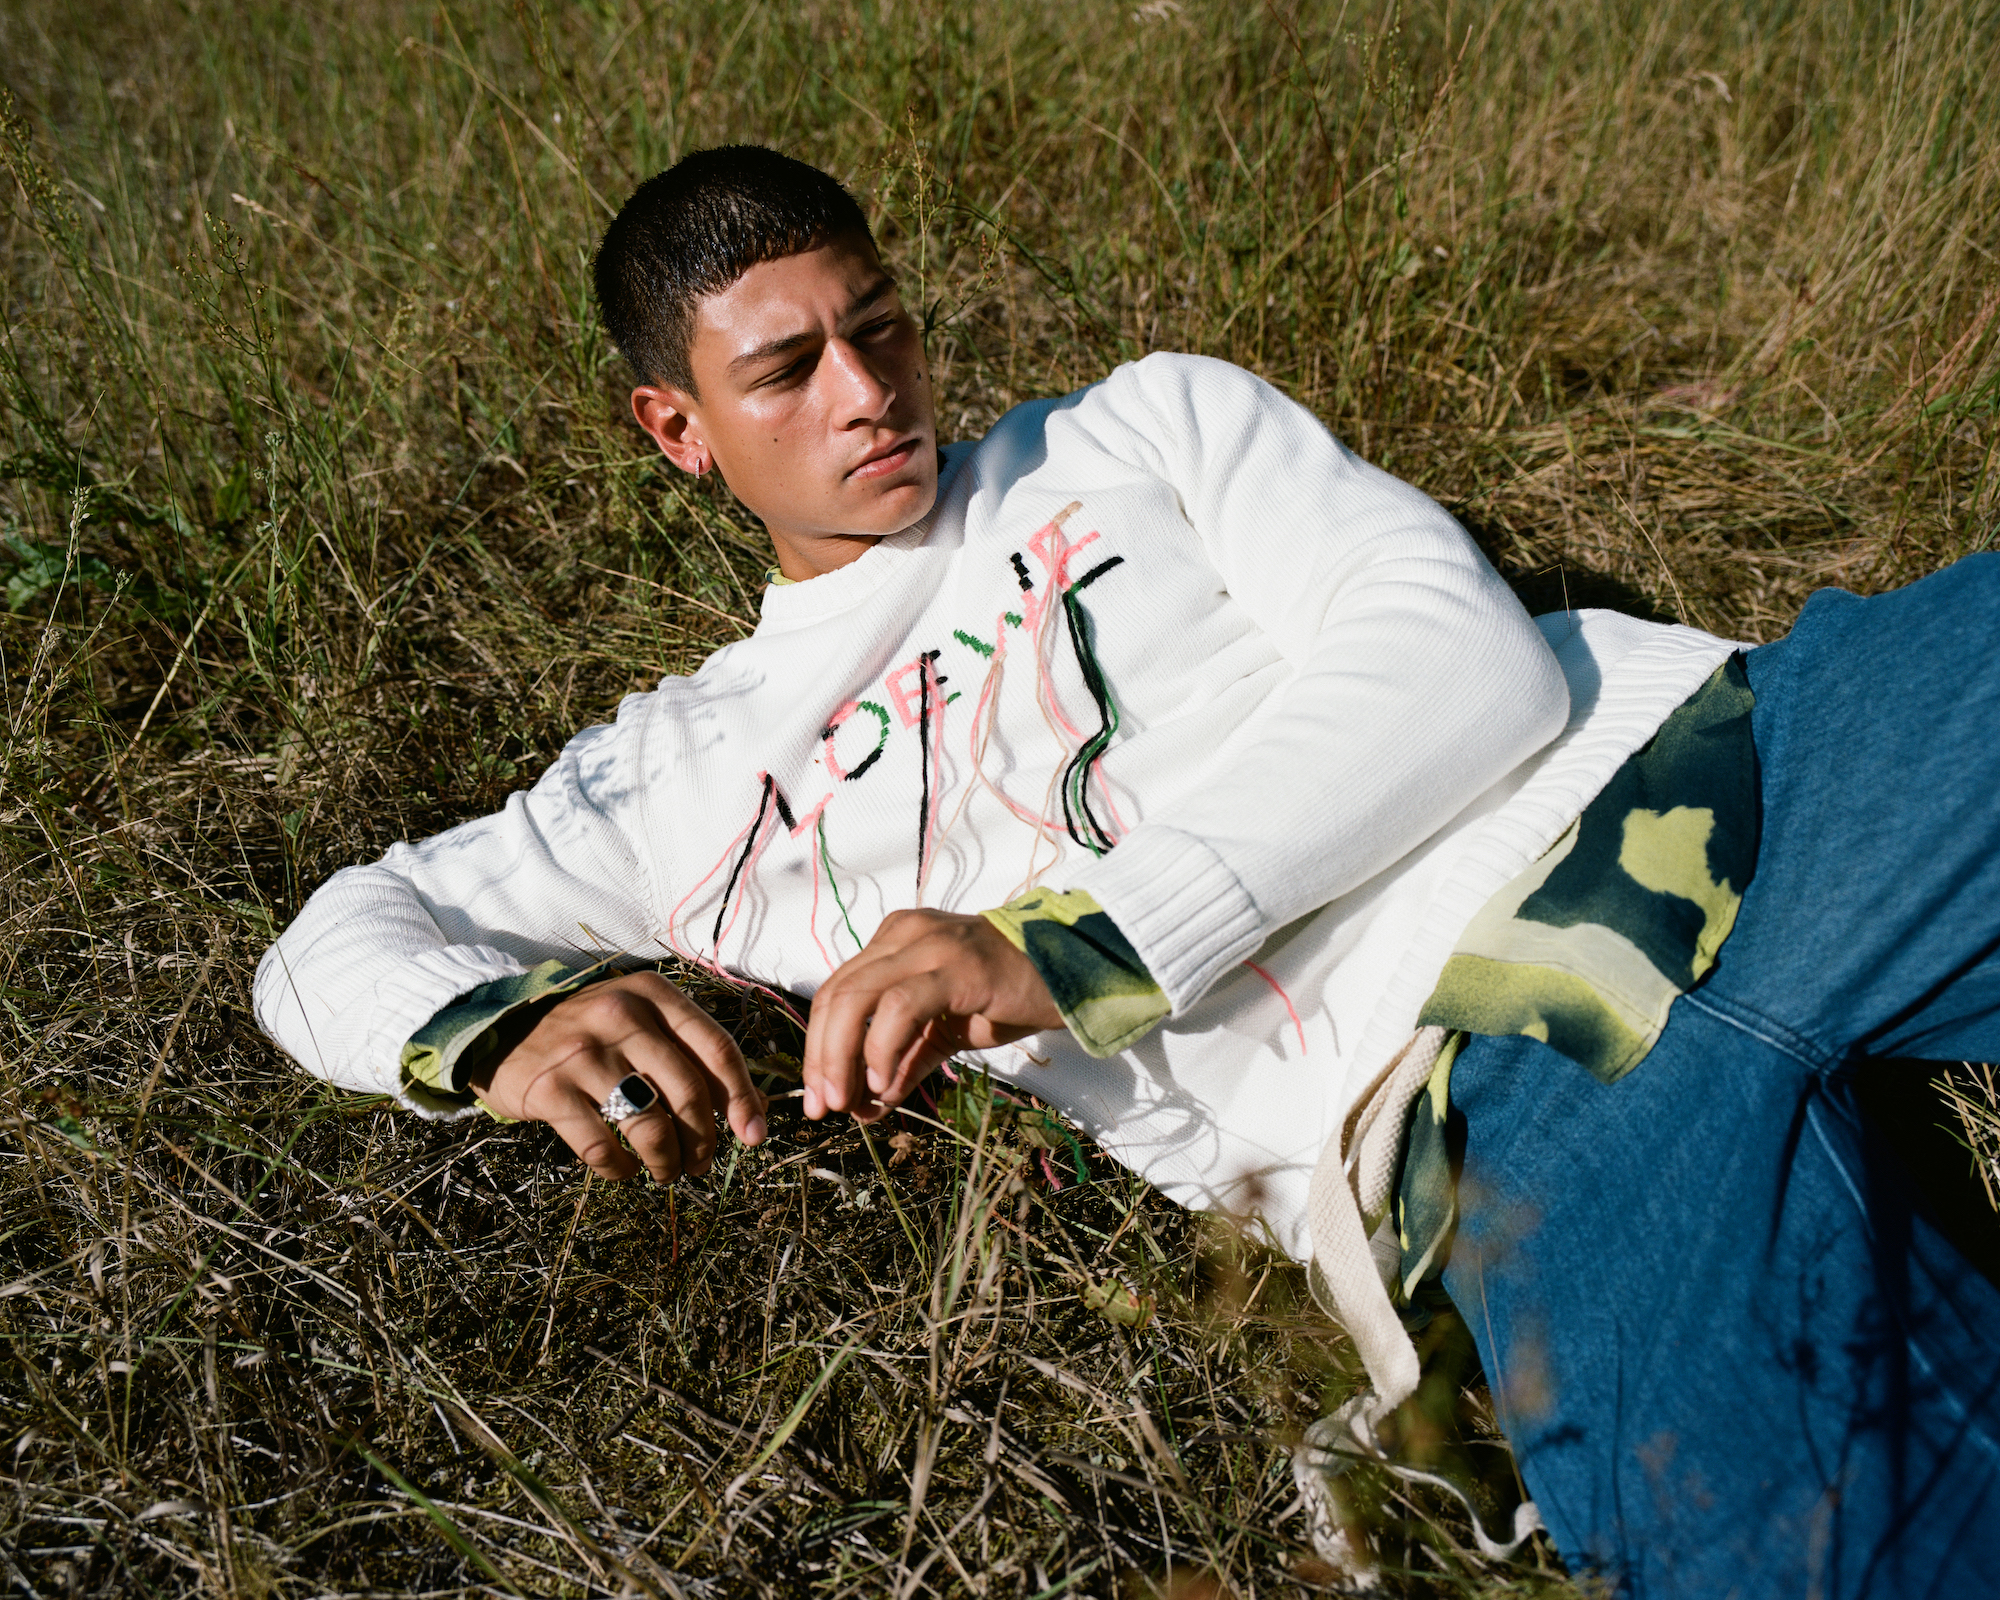 Emilio Sakraya in white jumper and blue jeans lying down